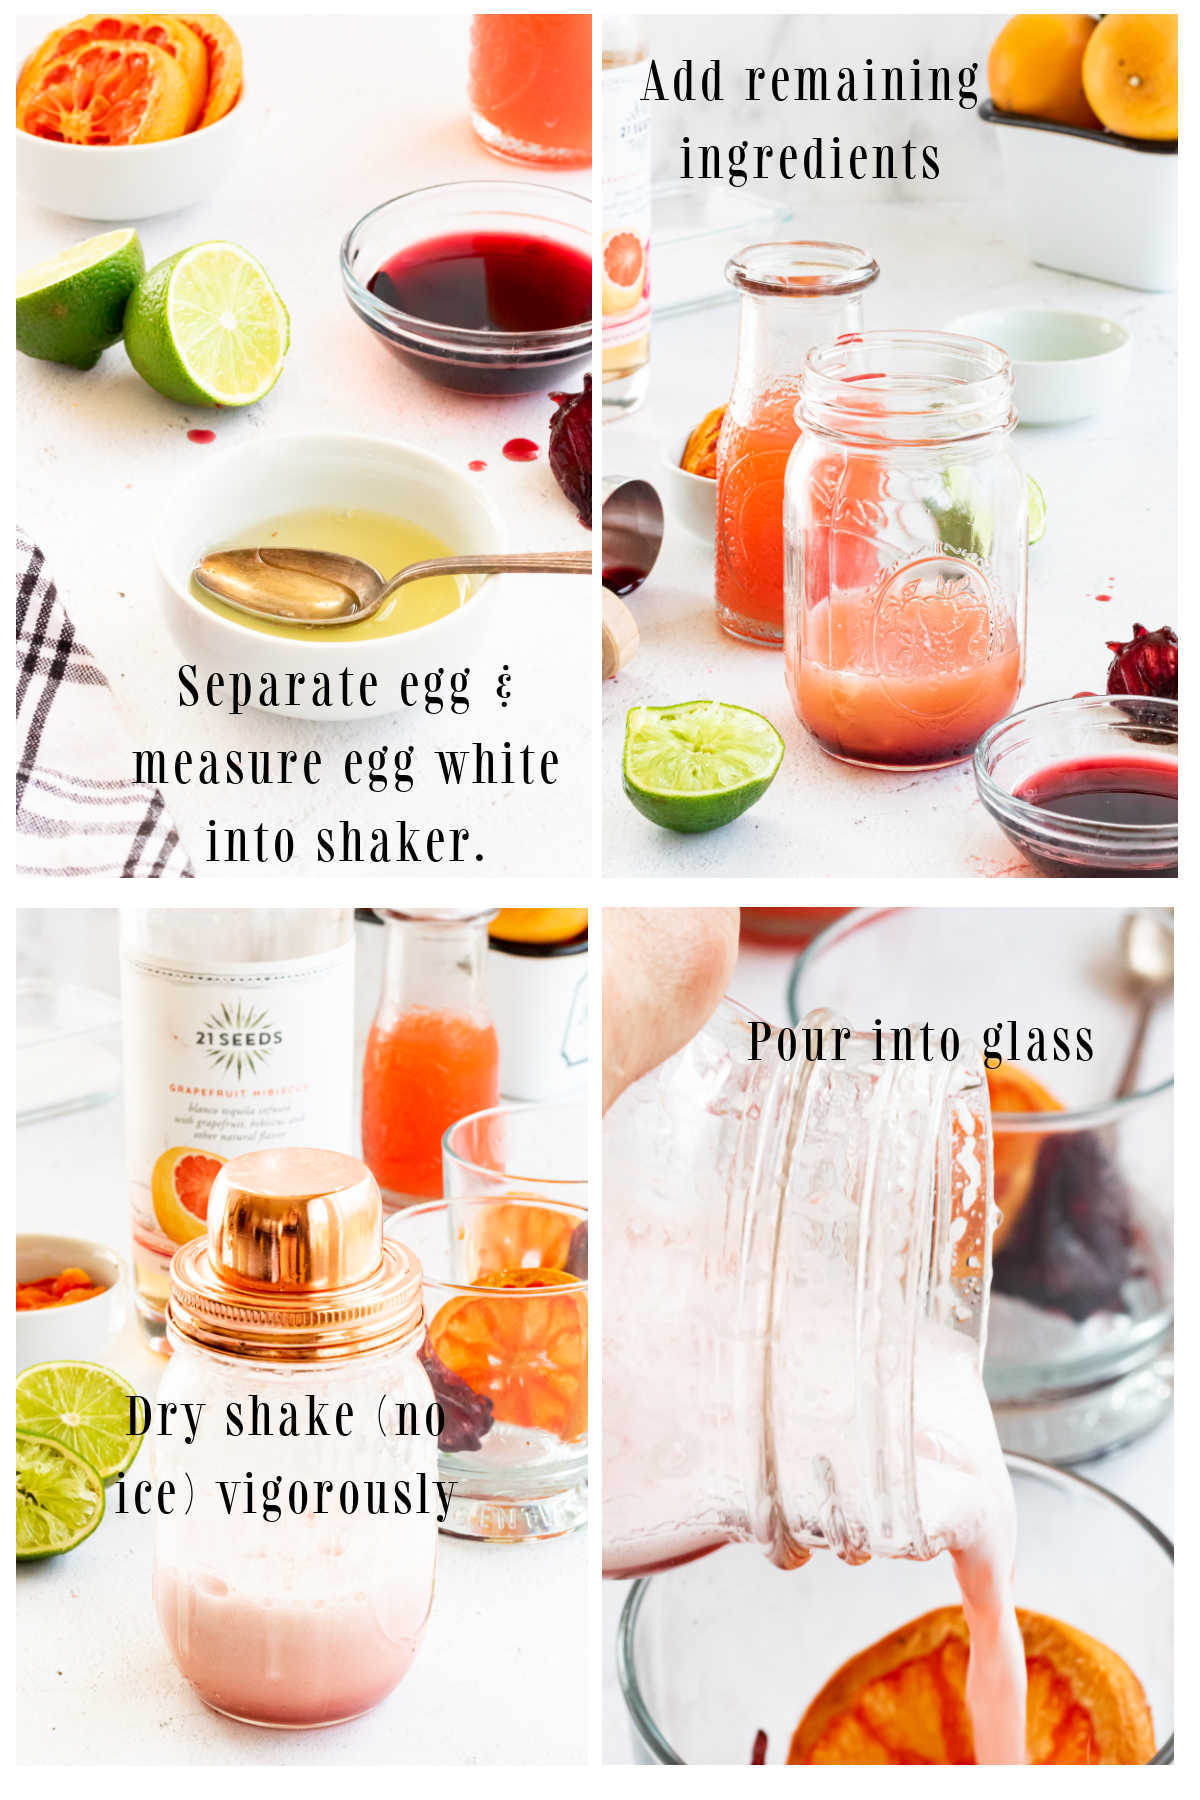 Step by step images for making an easy tequila sour.